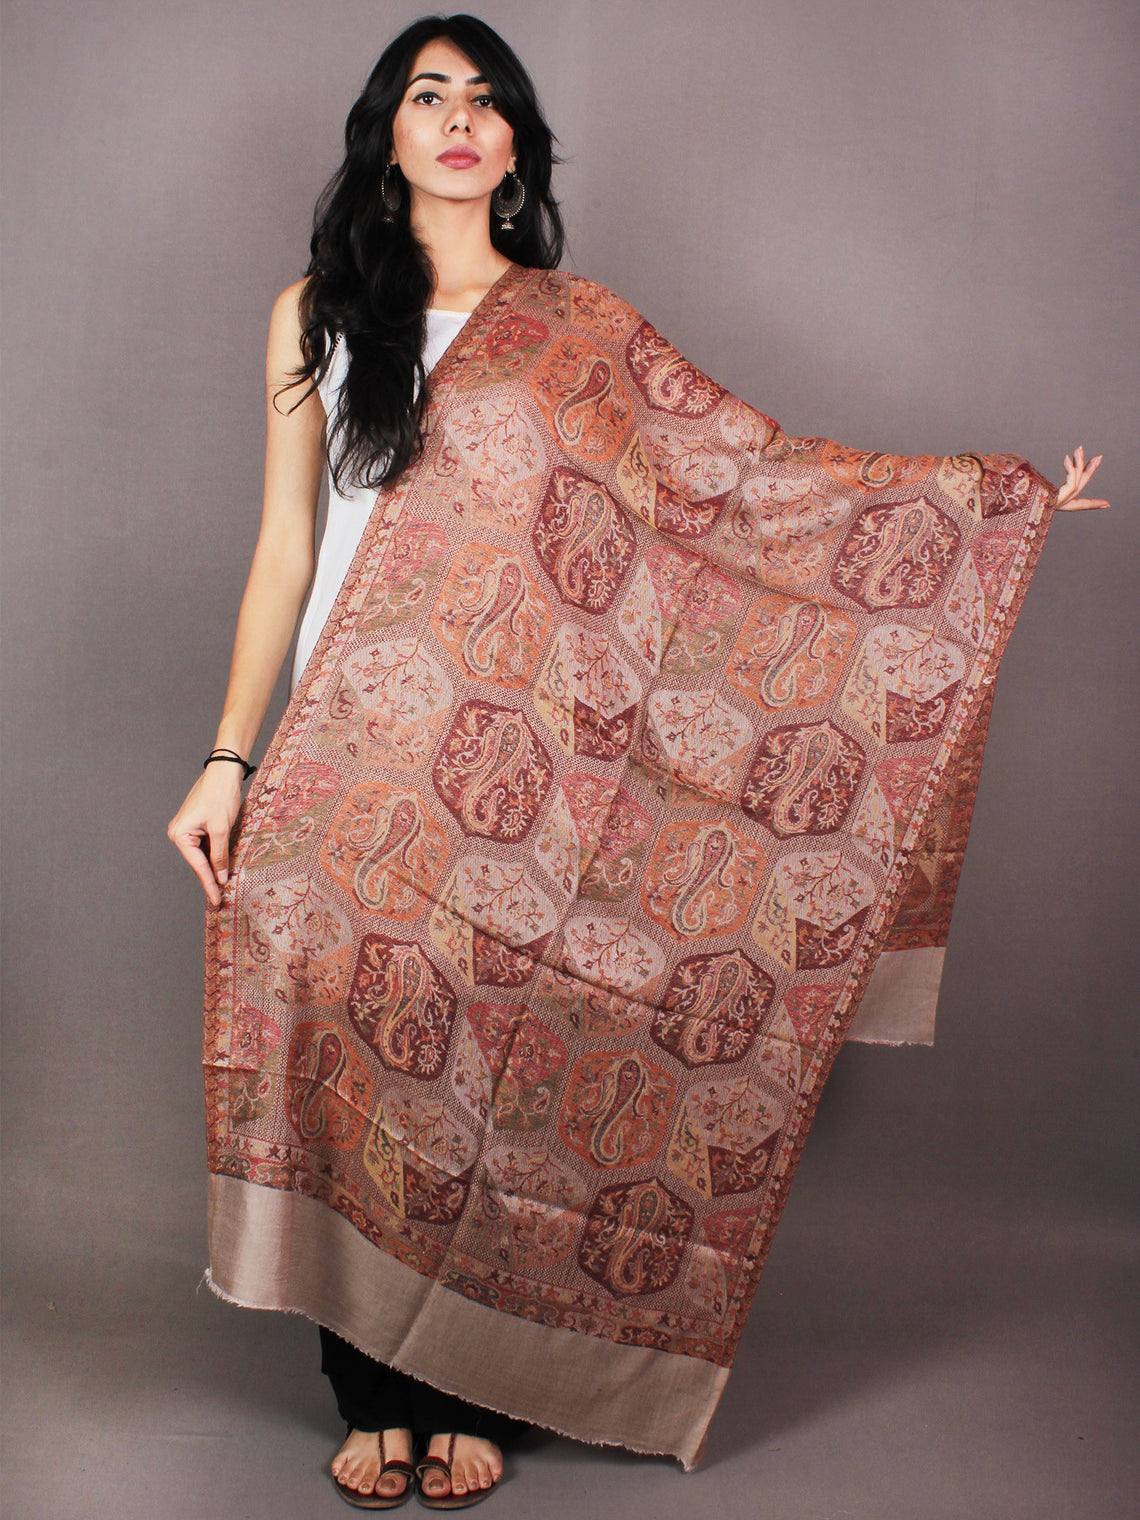 Ivory Orange Maroon Pure Wool Jamawar Cashmere Stole from Kashmir - S6317113